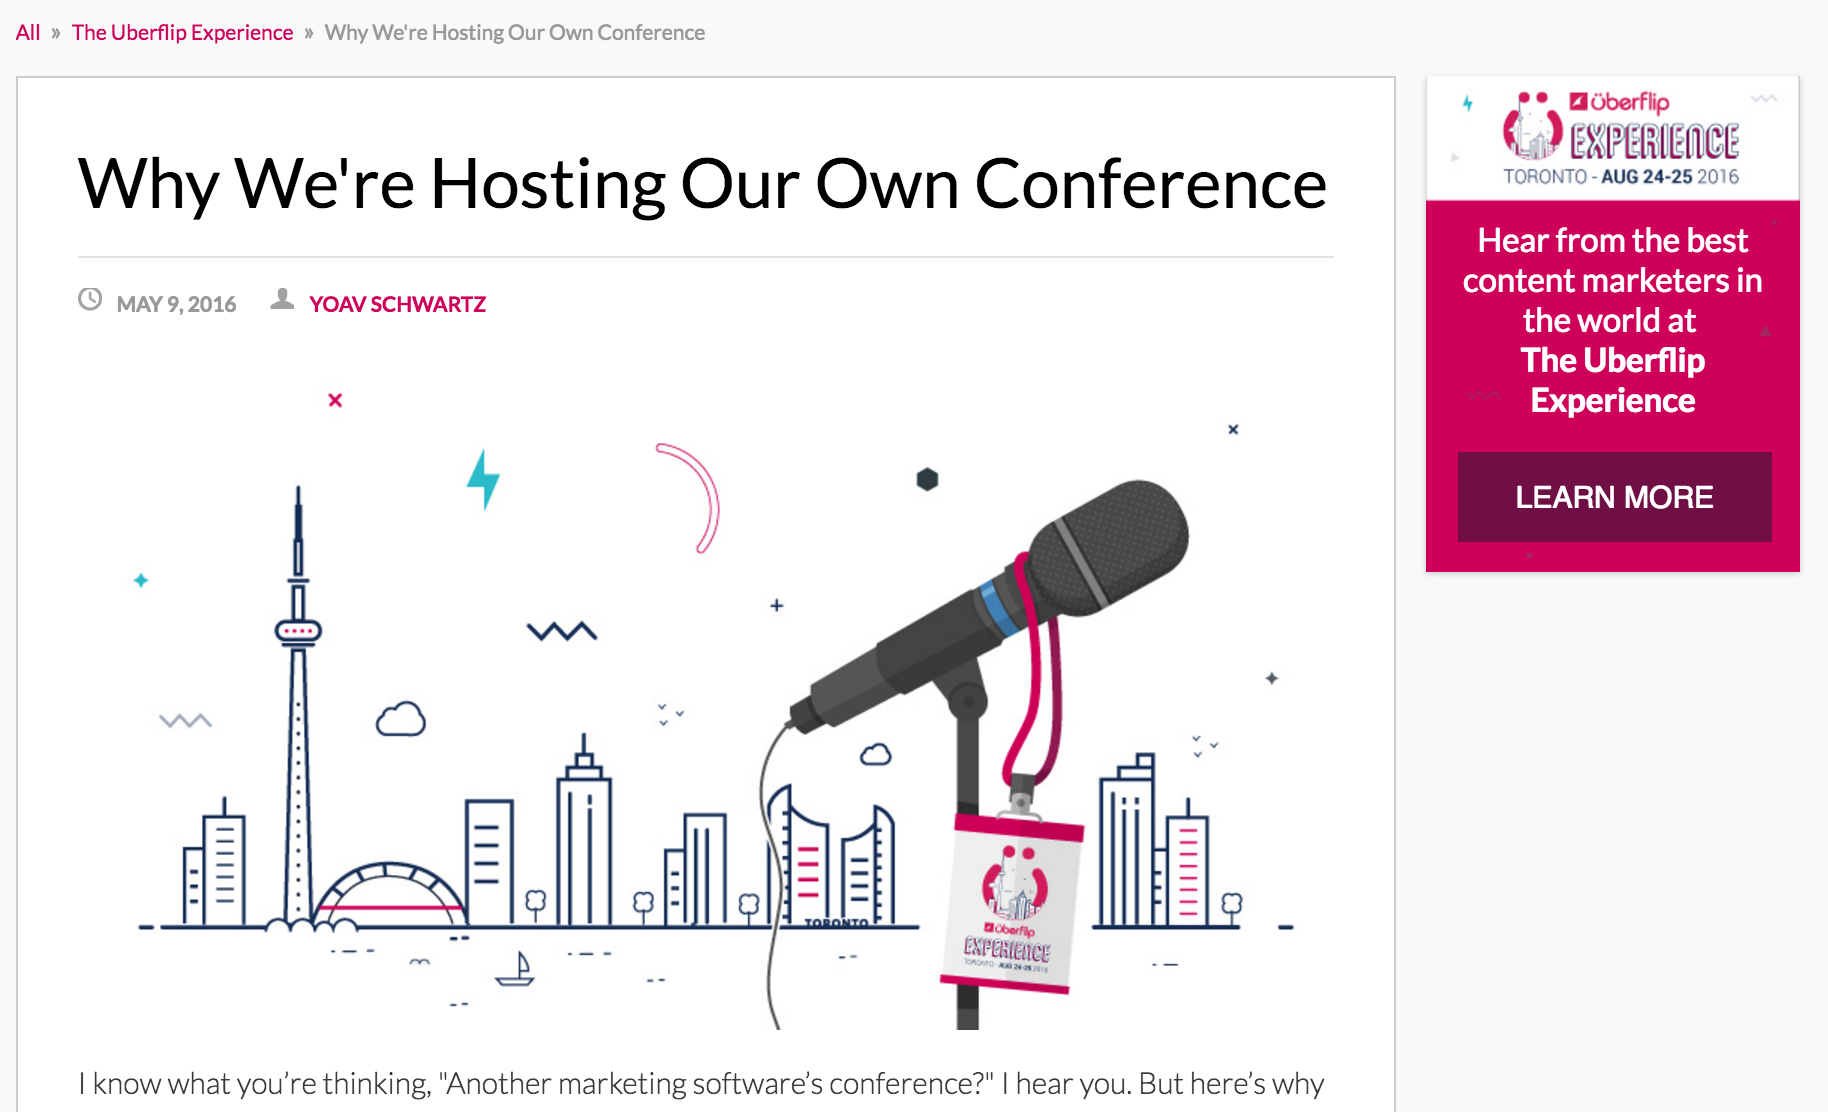 Why we're hosting our own conference blog